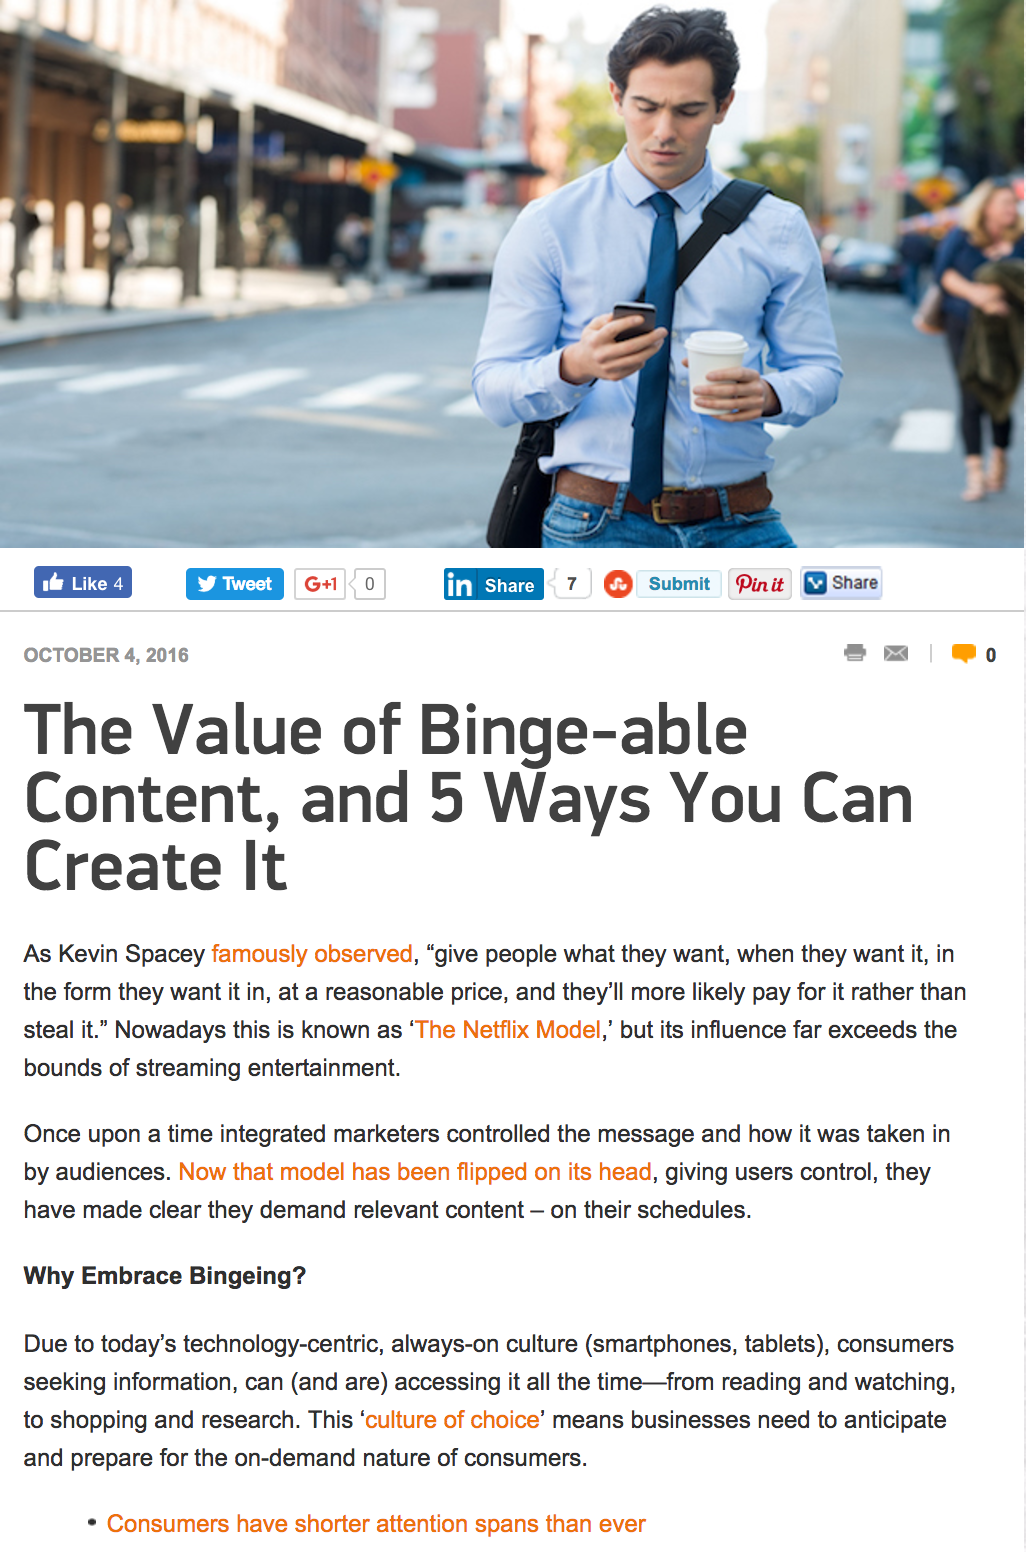 The Value of Binge-able Content - Marketing Tango